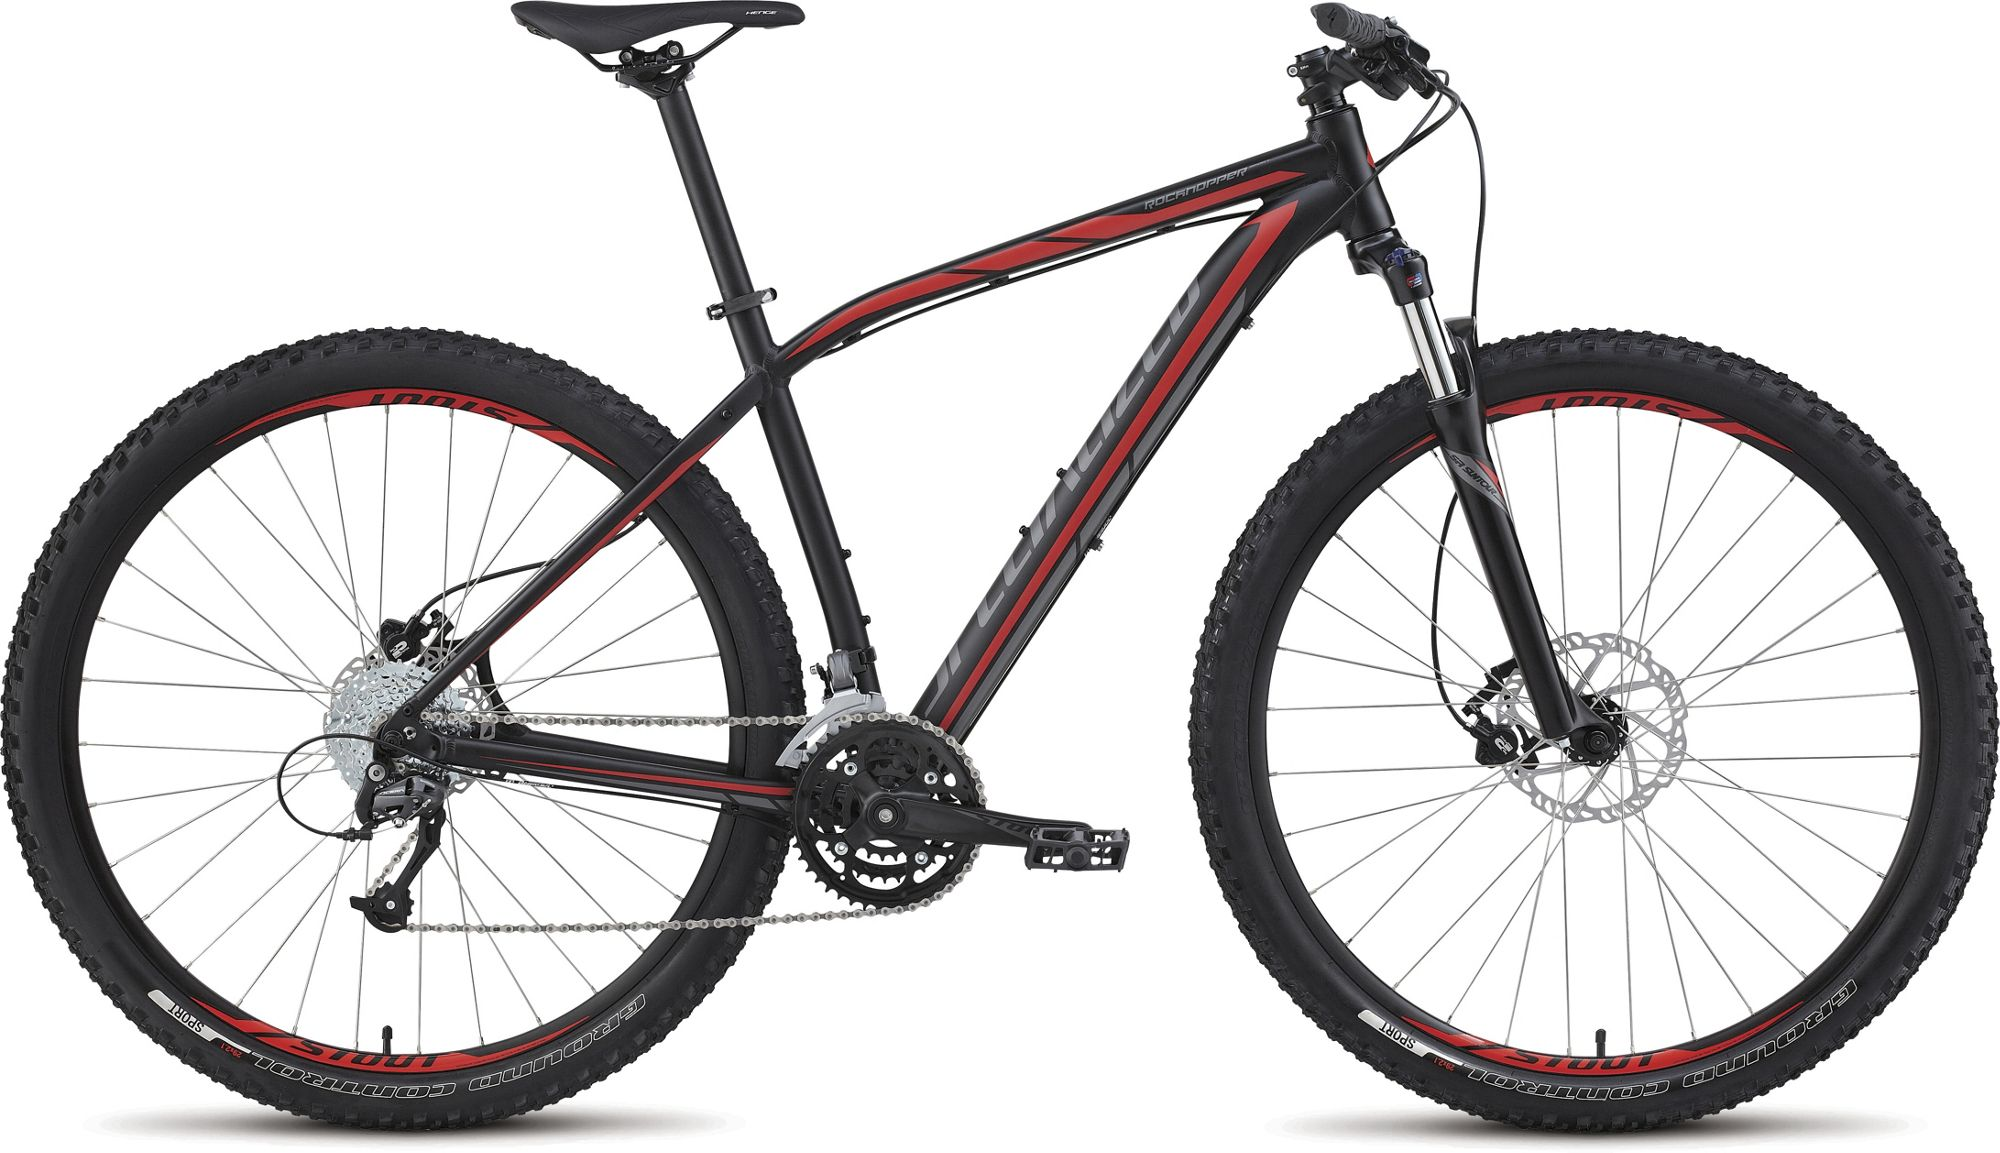 Specialized Rockhopper Sport 29 2015 Review The Bike List